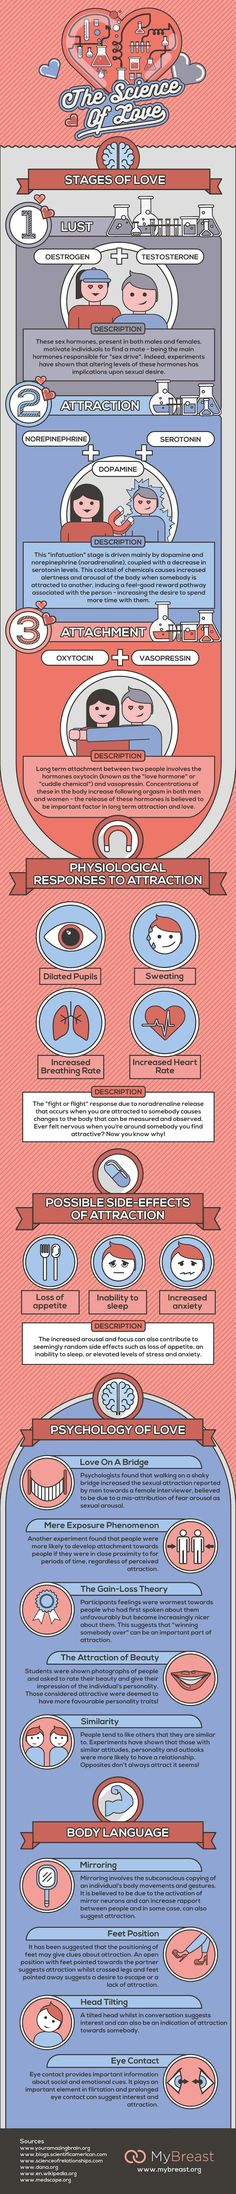 Infographic: The Science Of Falling In Love - DesignTAXI.com